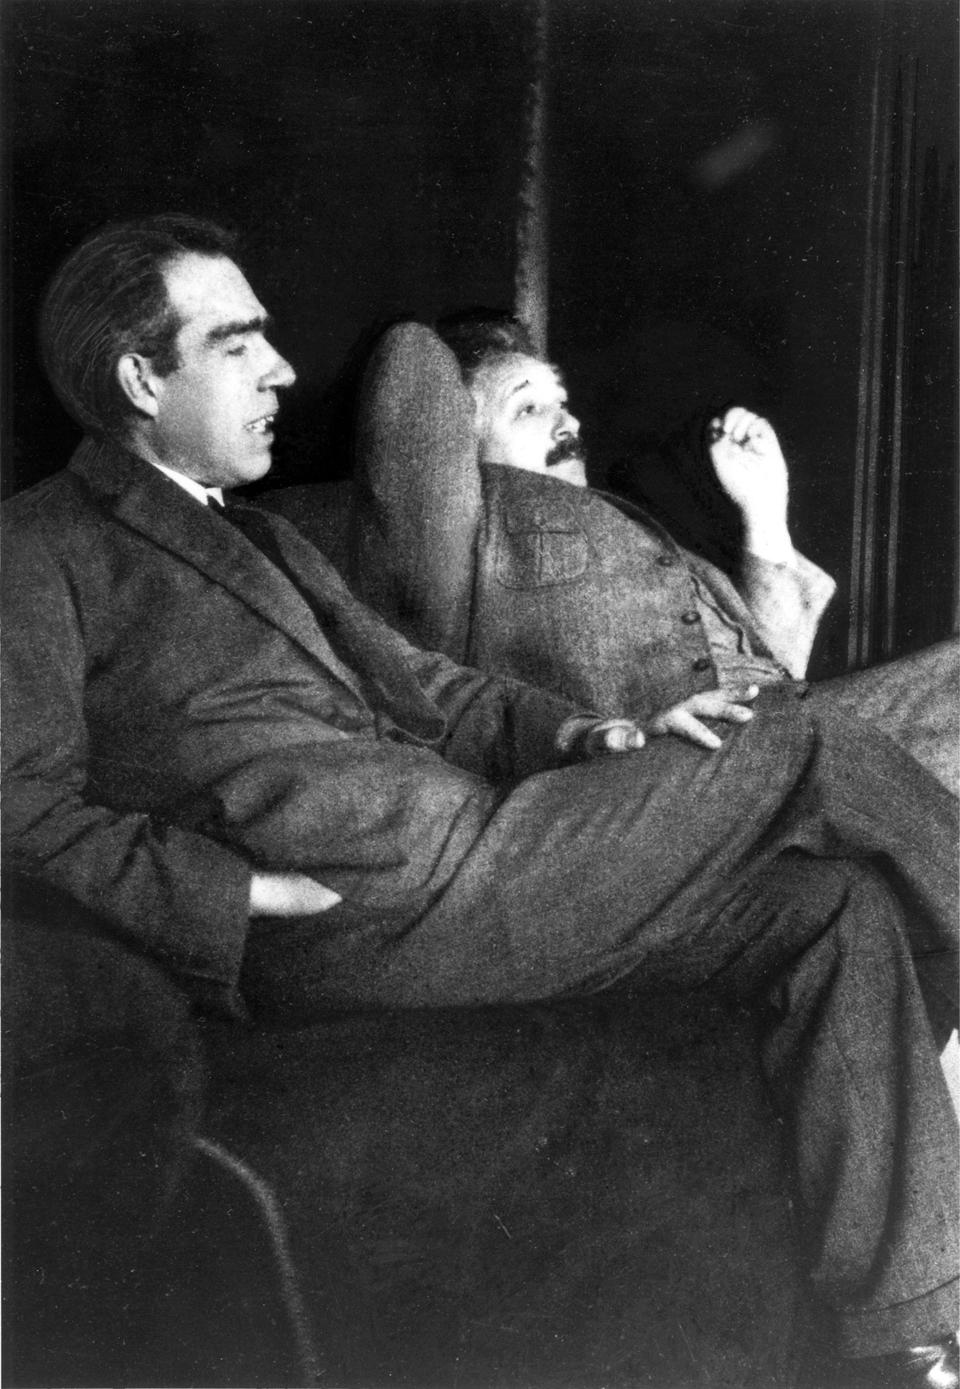 Niels Bohr and Albert Einstein, discussing topics in the home of Paul Ehrenfest in 1925.